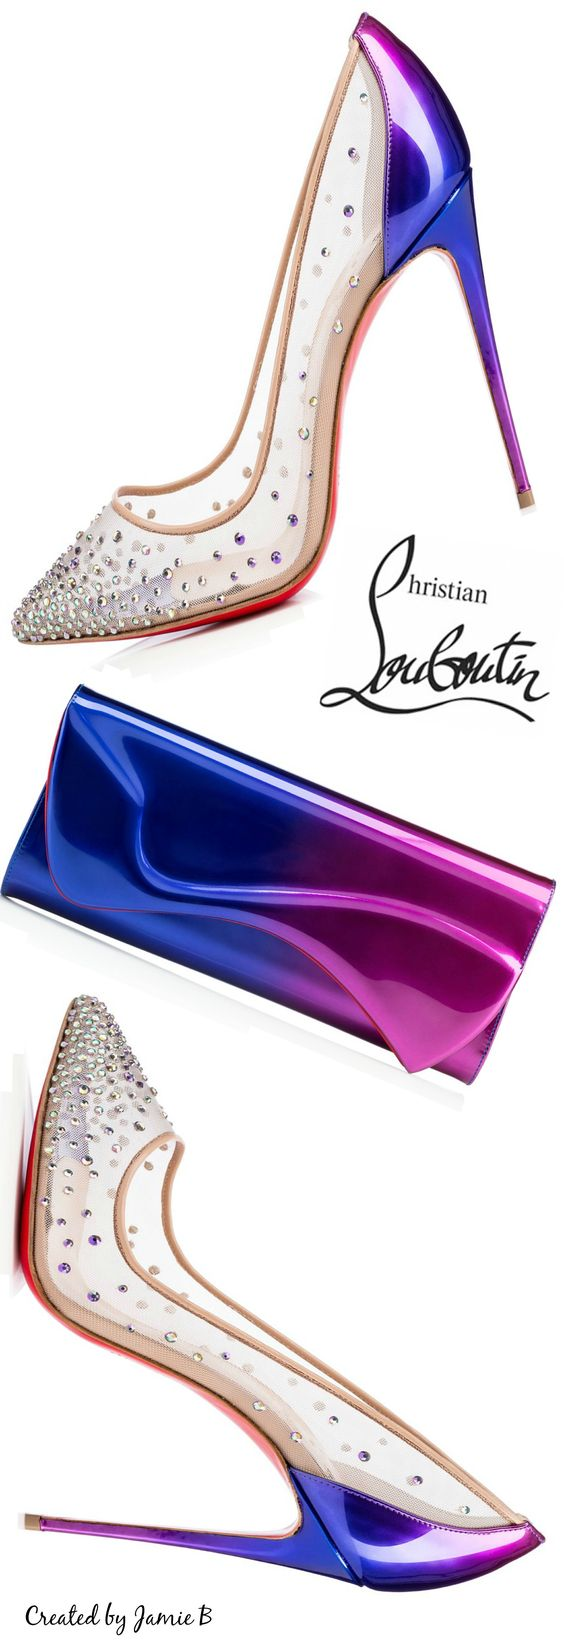 Street Style Fashion Christian Louboutin Pumps For Women. get it for 96!!!: